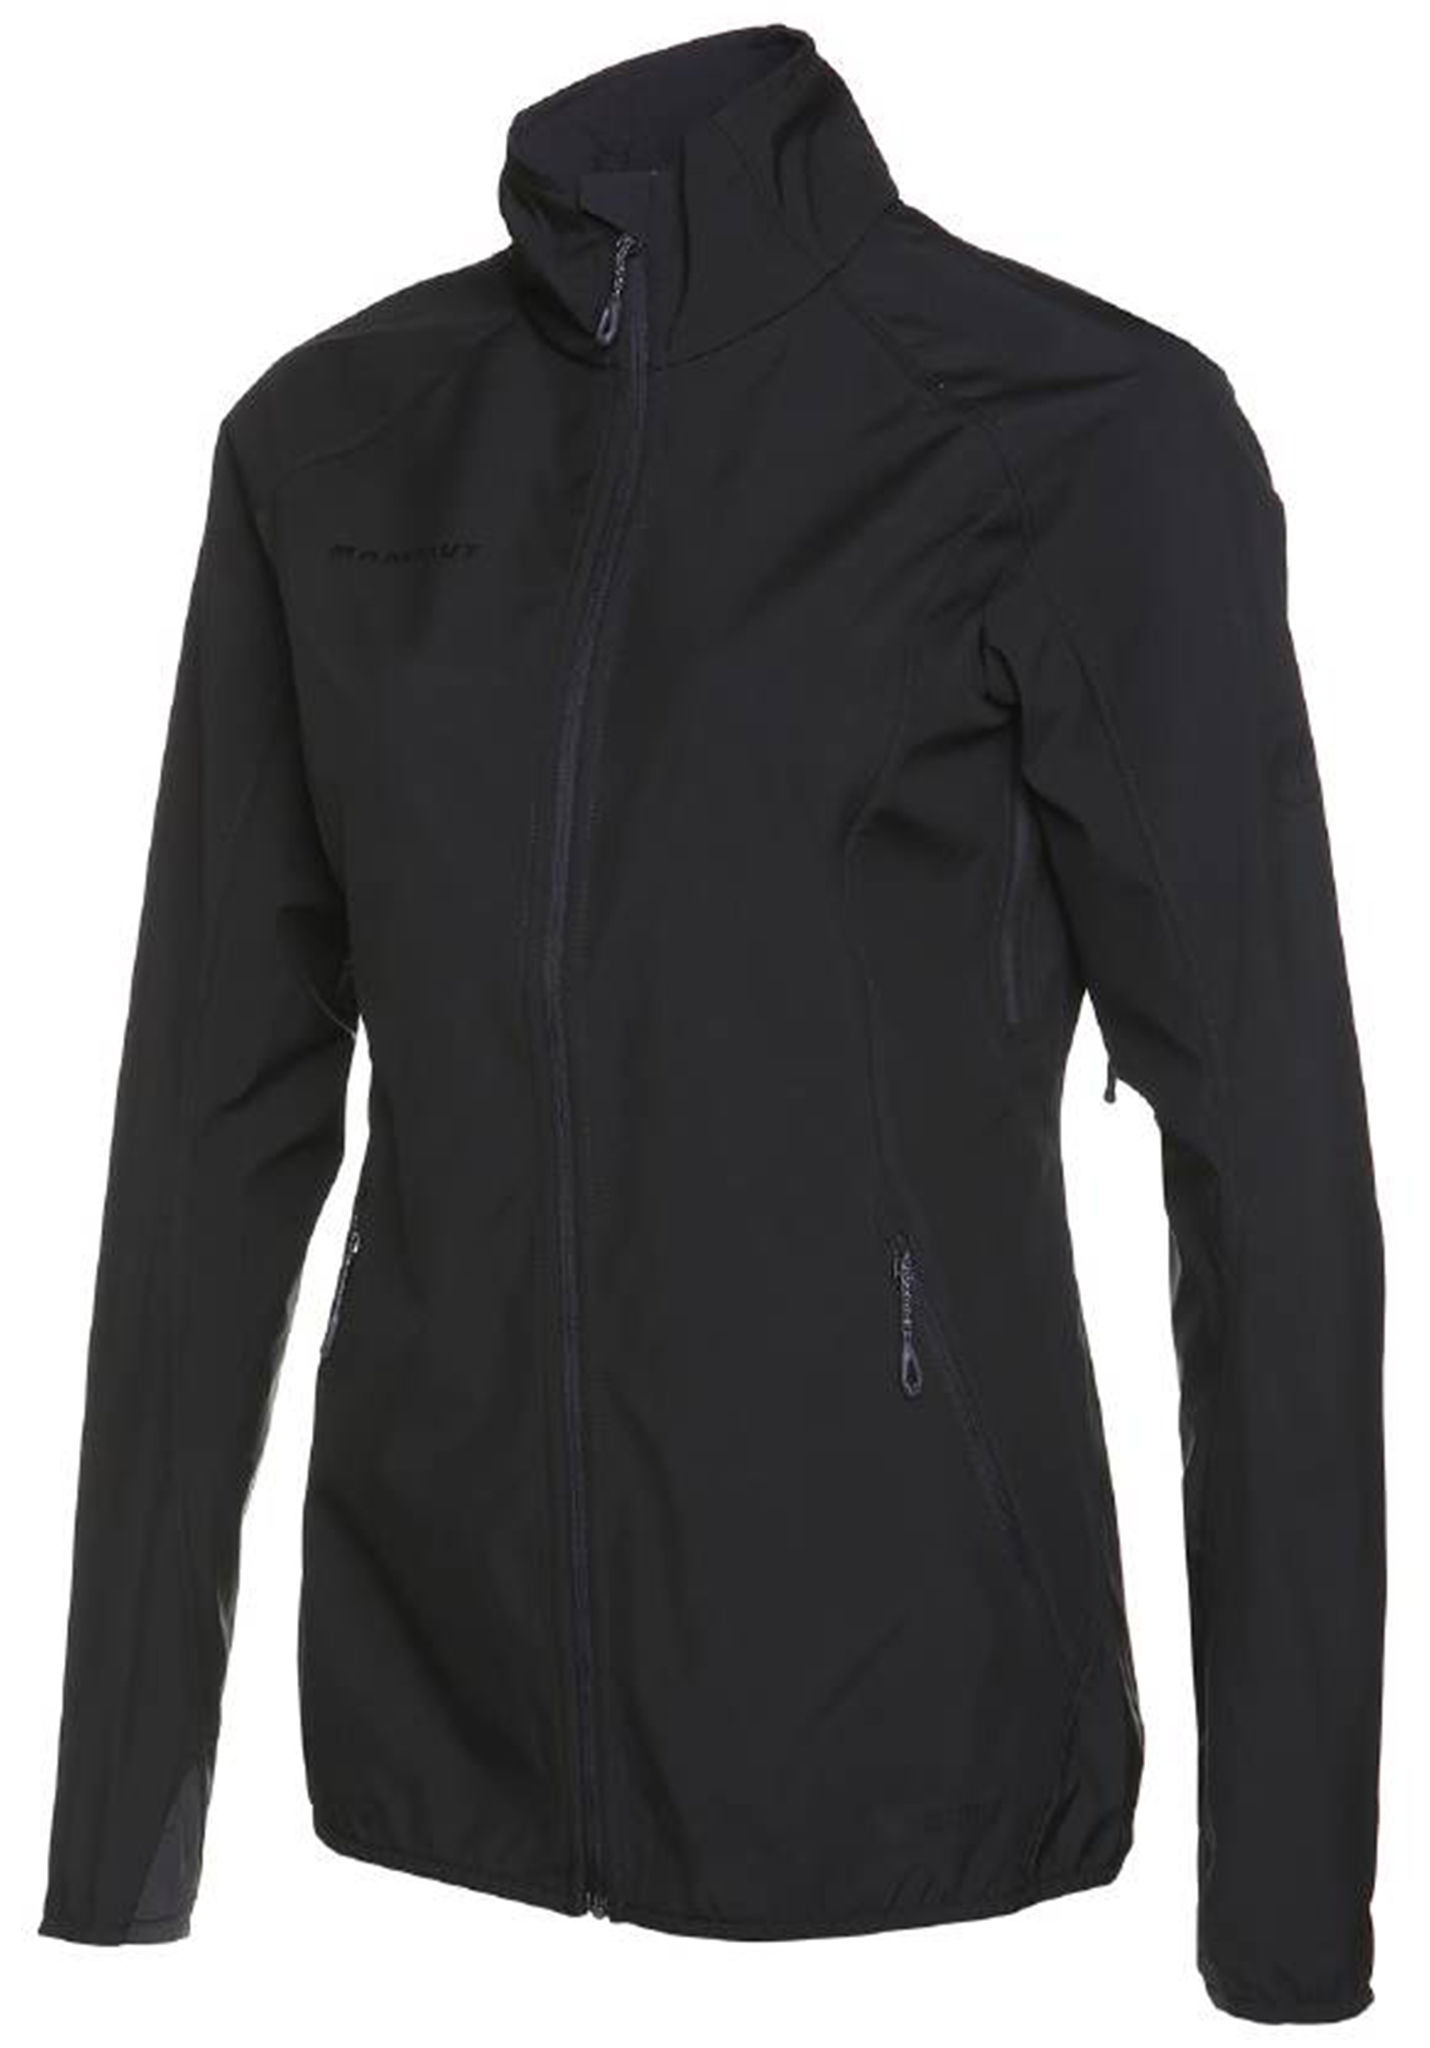 Mammut damen jacke ultimate light